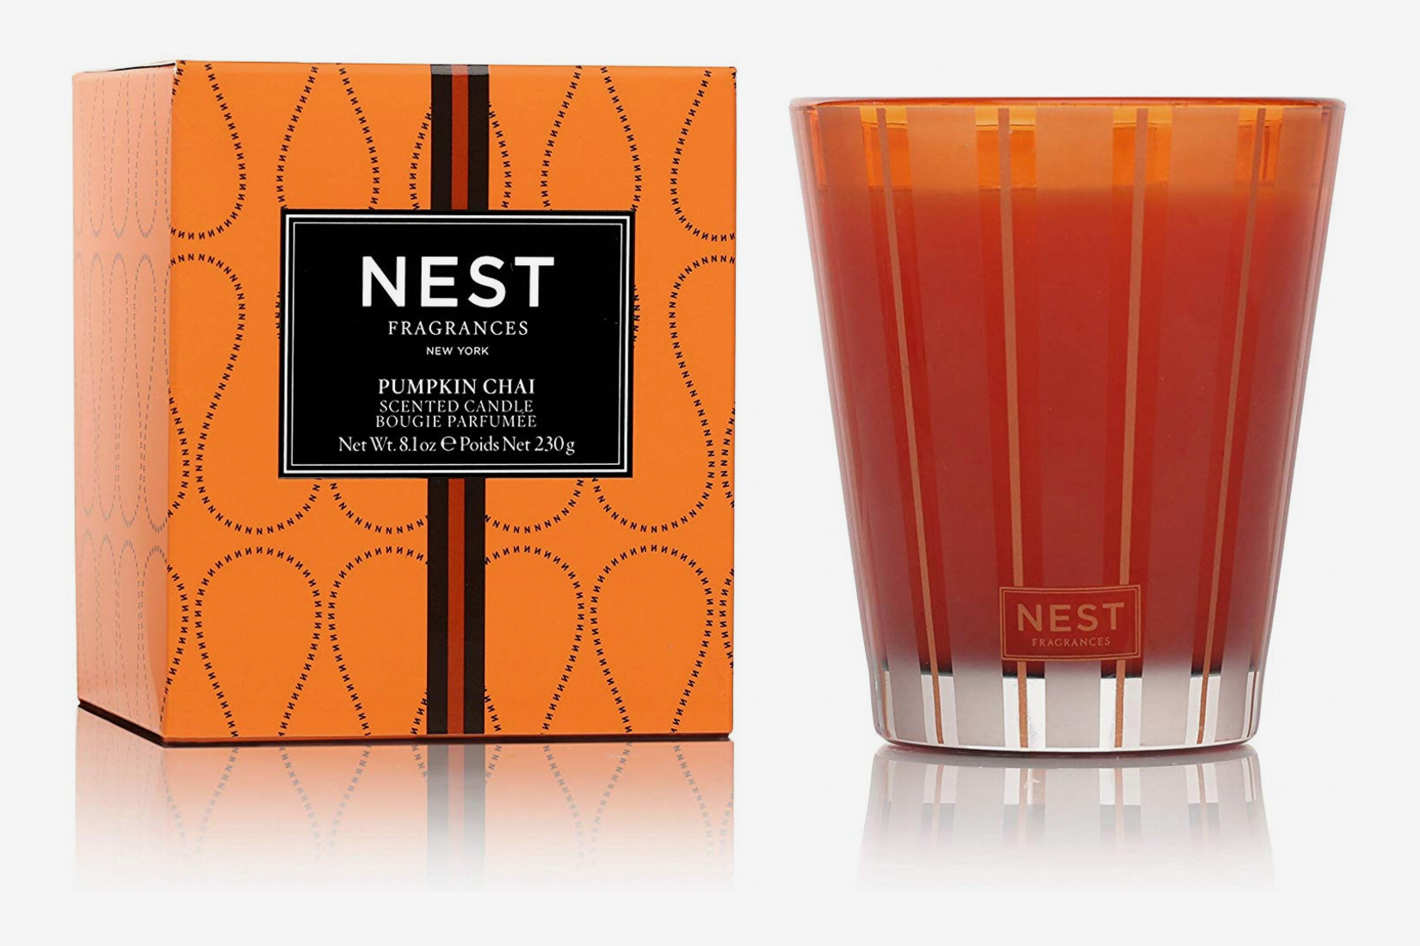 NEST Fragrances Classic Candle- Pumpkin Chai